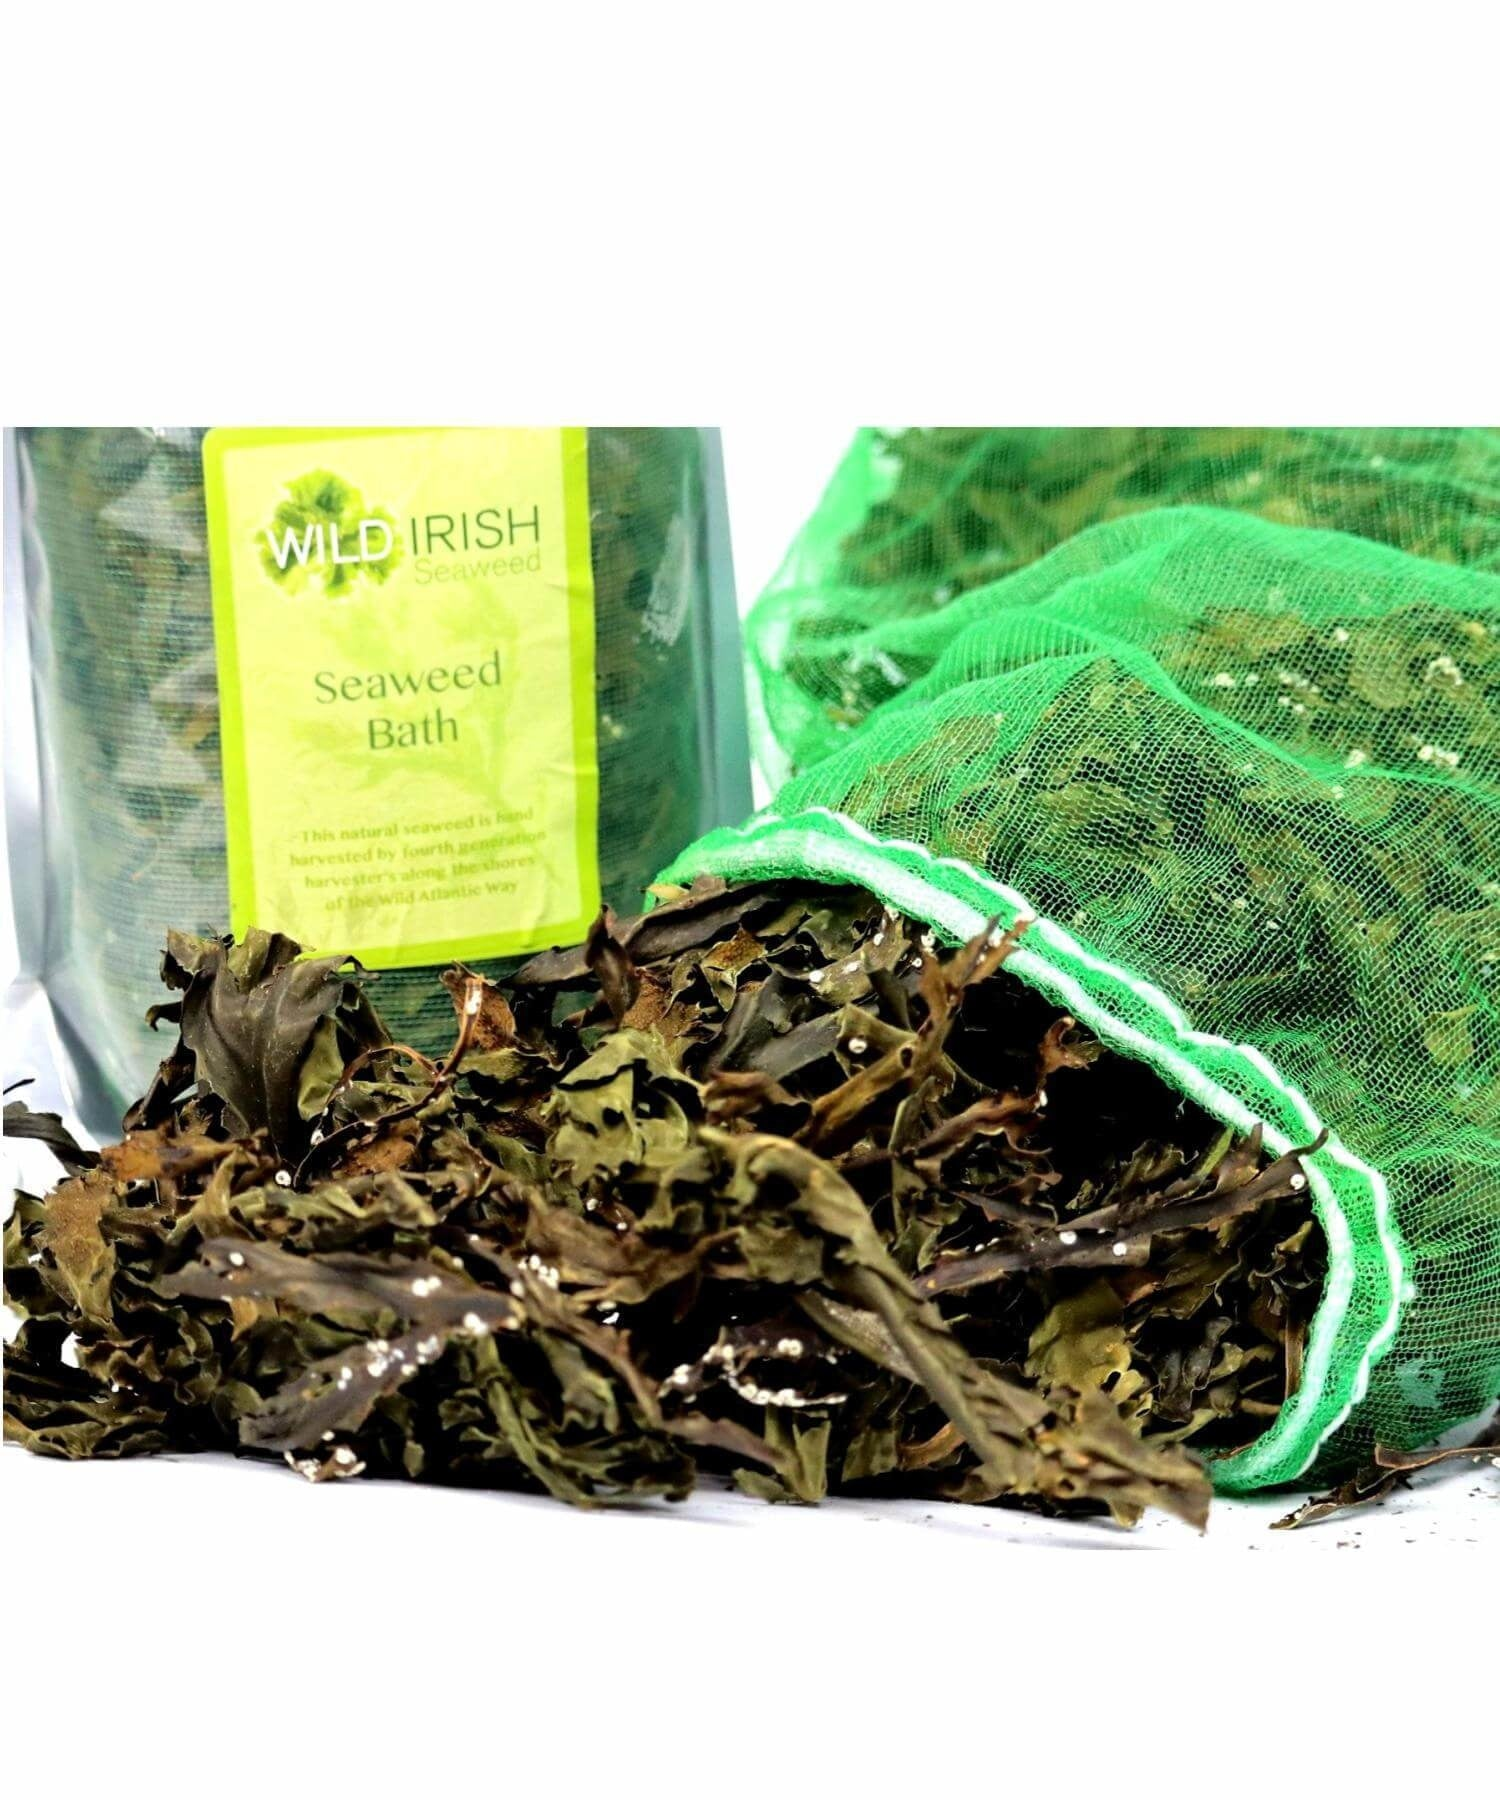 Irish Seaweed Bath - [Wild Irish Seaweed] - Skincare & Beauty - Irish Gifts